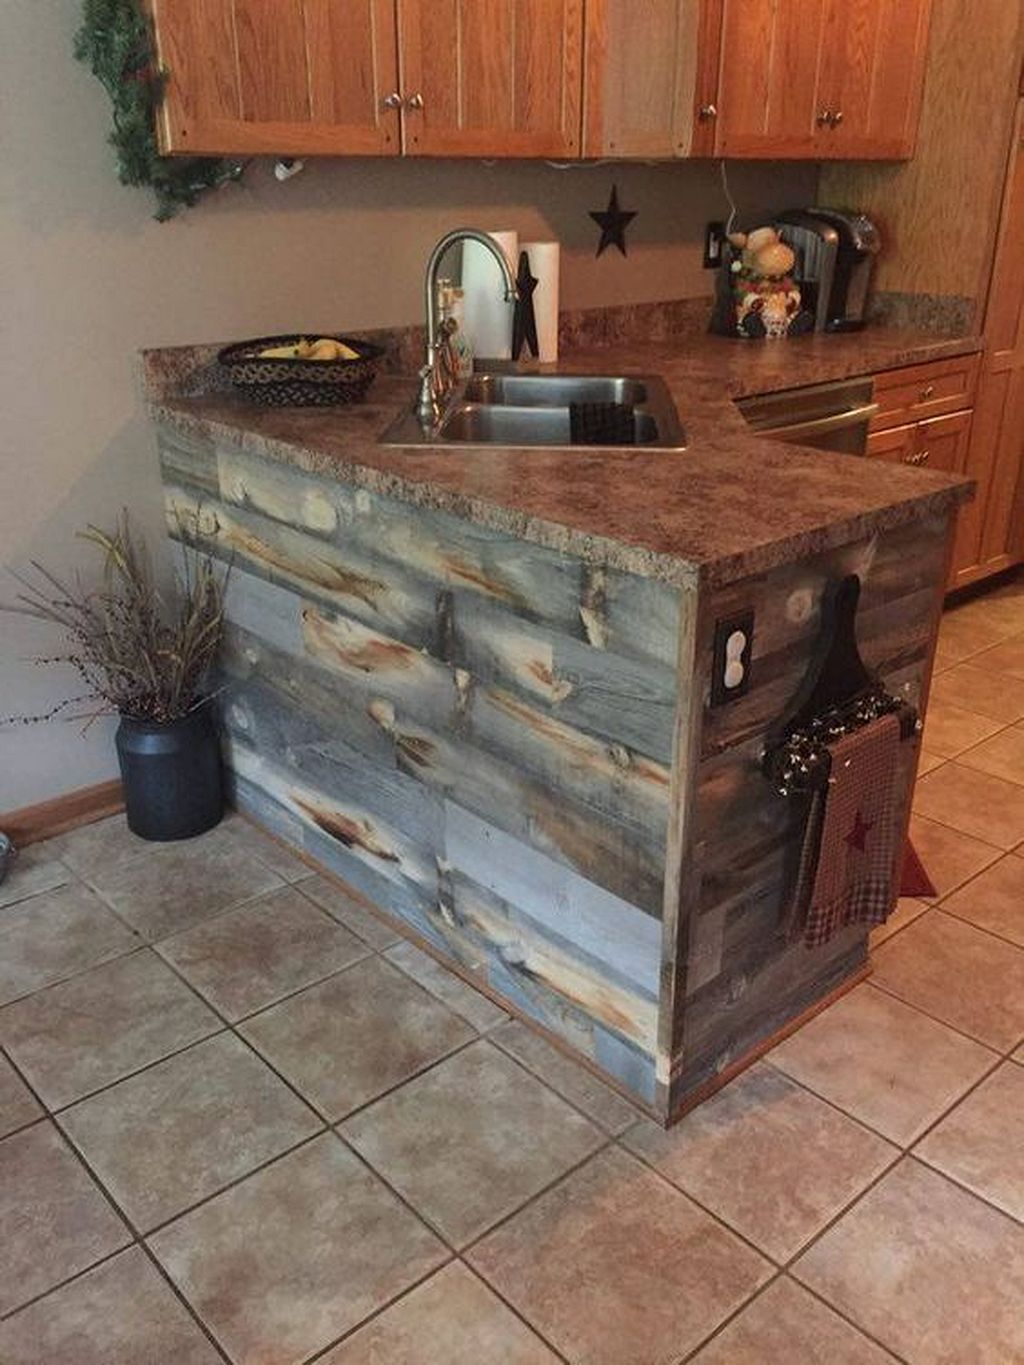 Best 10 Simple Rustic Homemade Kitchen Islands Ideas In 2020 400 x 300